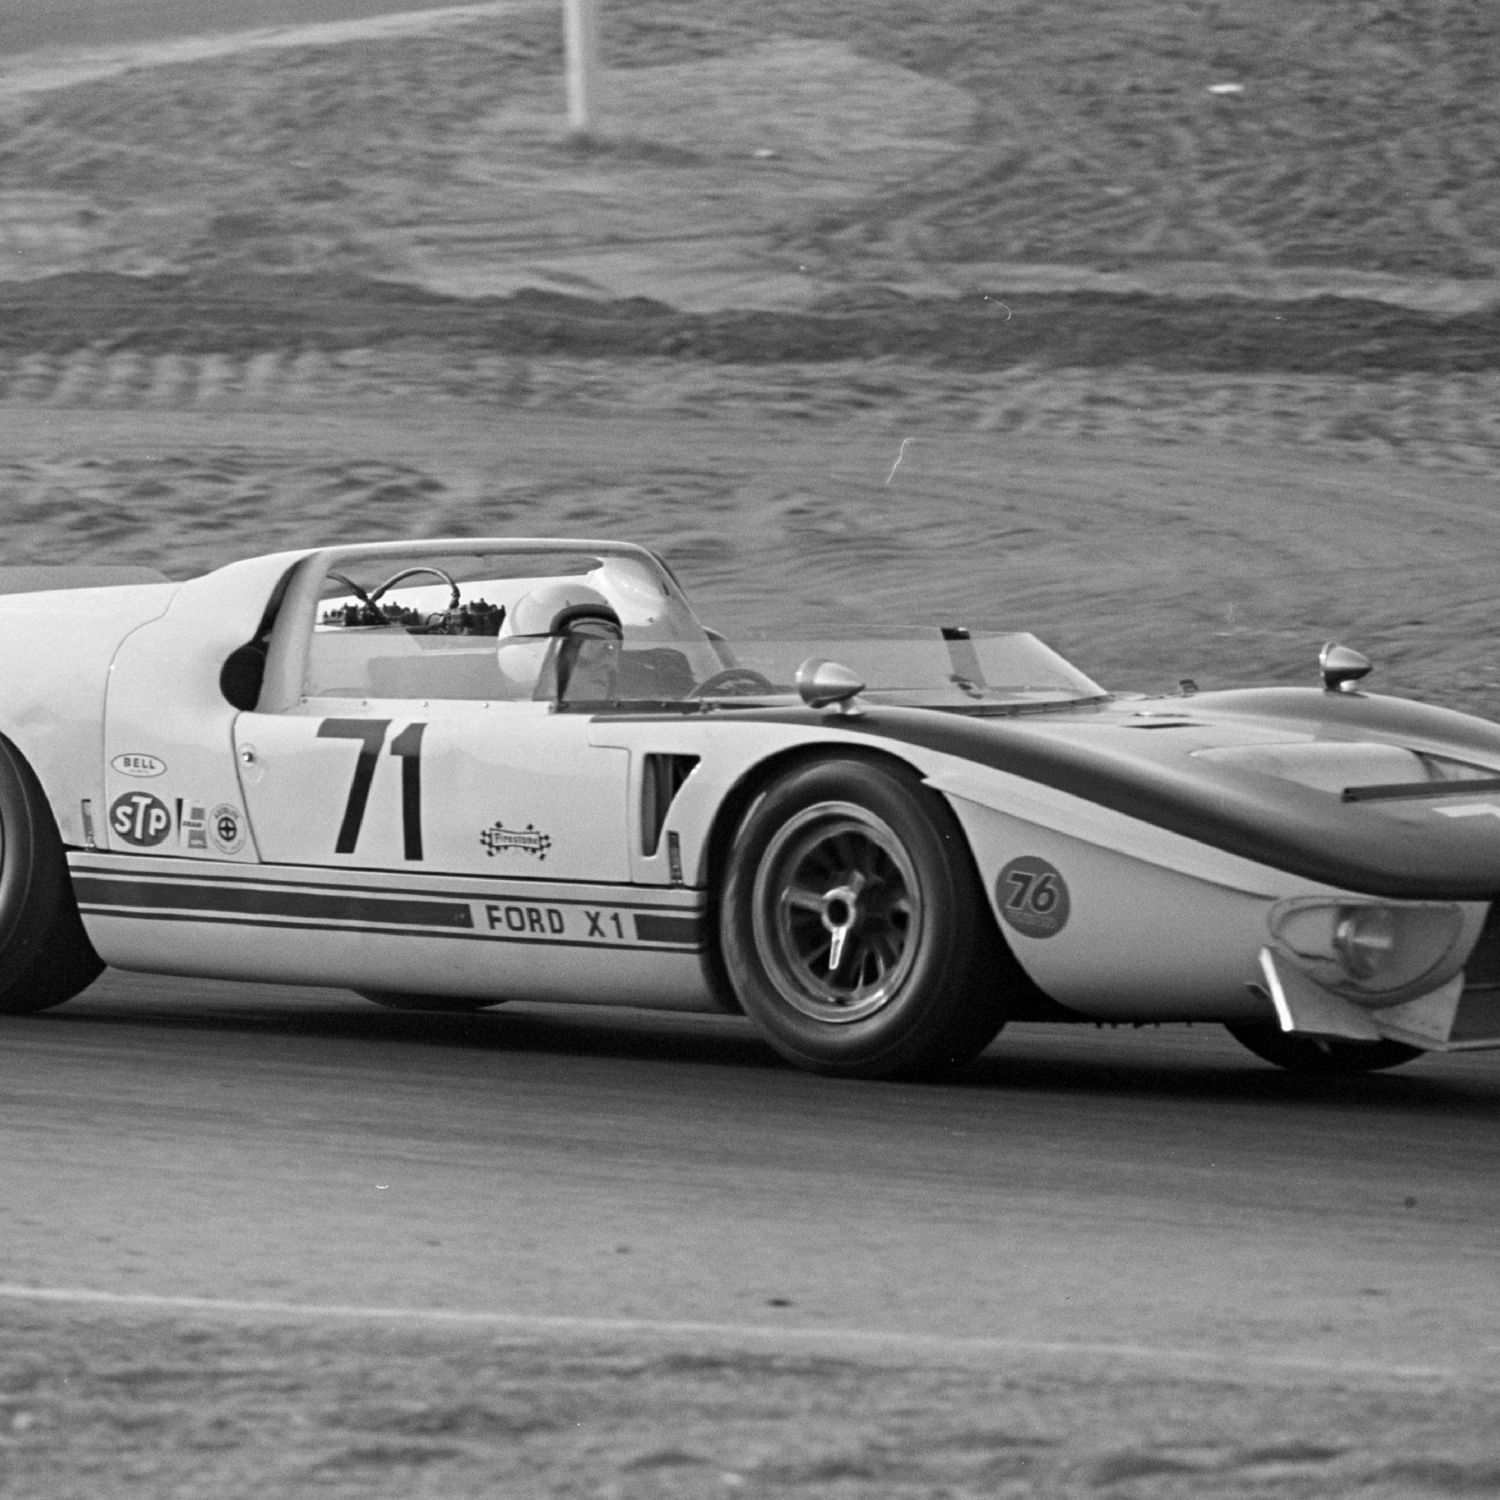 <p>A month later, Miles and Ruby won again: this time at Sebring in a wild-looking Ford X-1 roadster. The 1966 race was marred by tragedy: Canadian driver Bob McLean perished in a GT40 Mark II, and four spectators were killed. The race continued on, and the GT40s took a 1-2-3 sweep with Miles in first. He had ticked off two of the Triple Crown endurance races. Le Mans was next. </p>